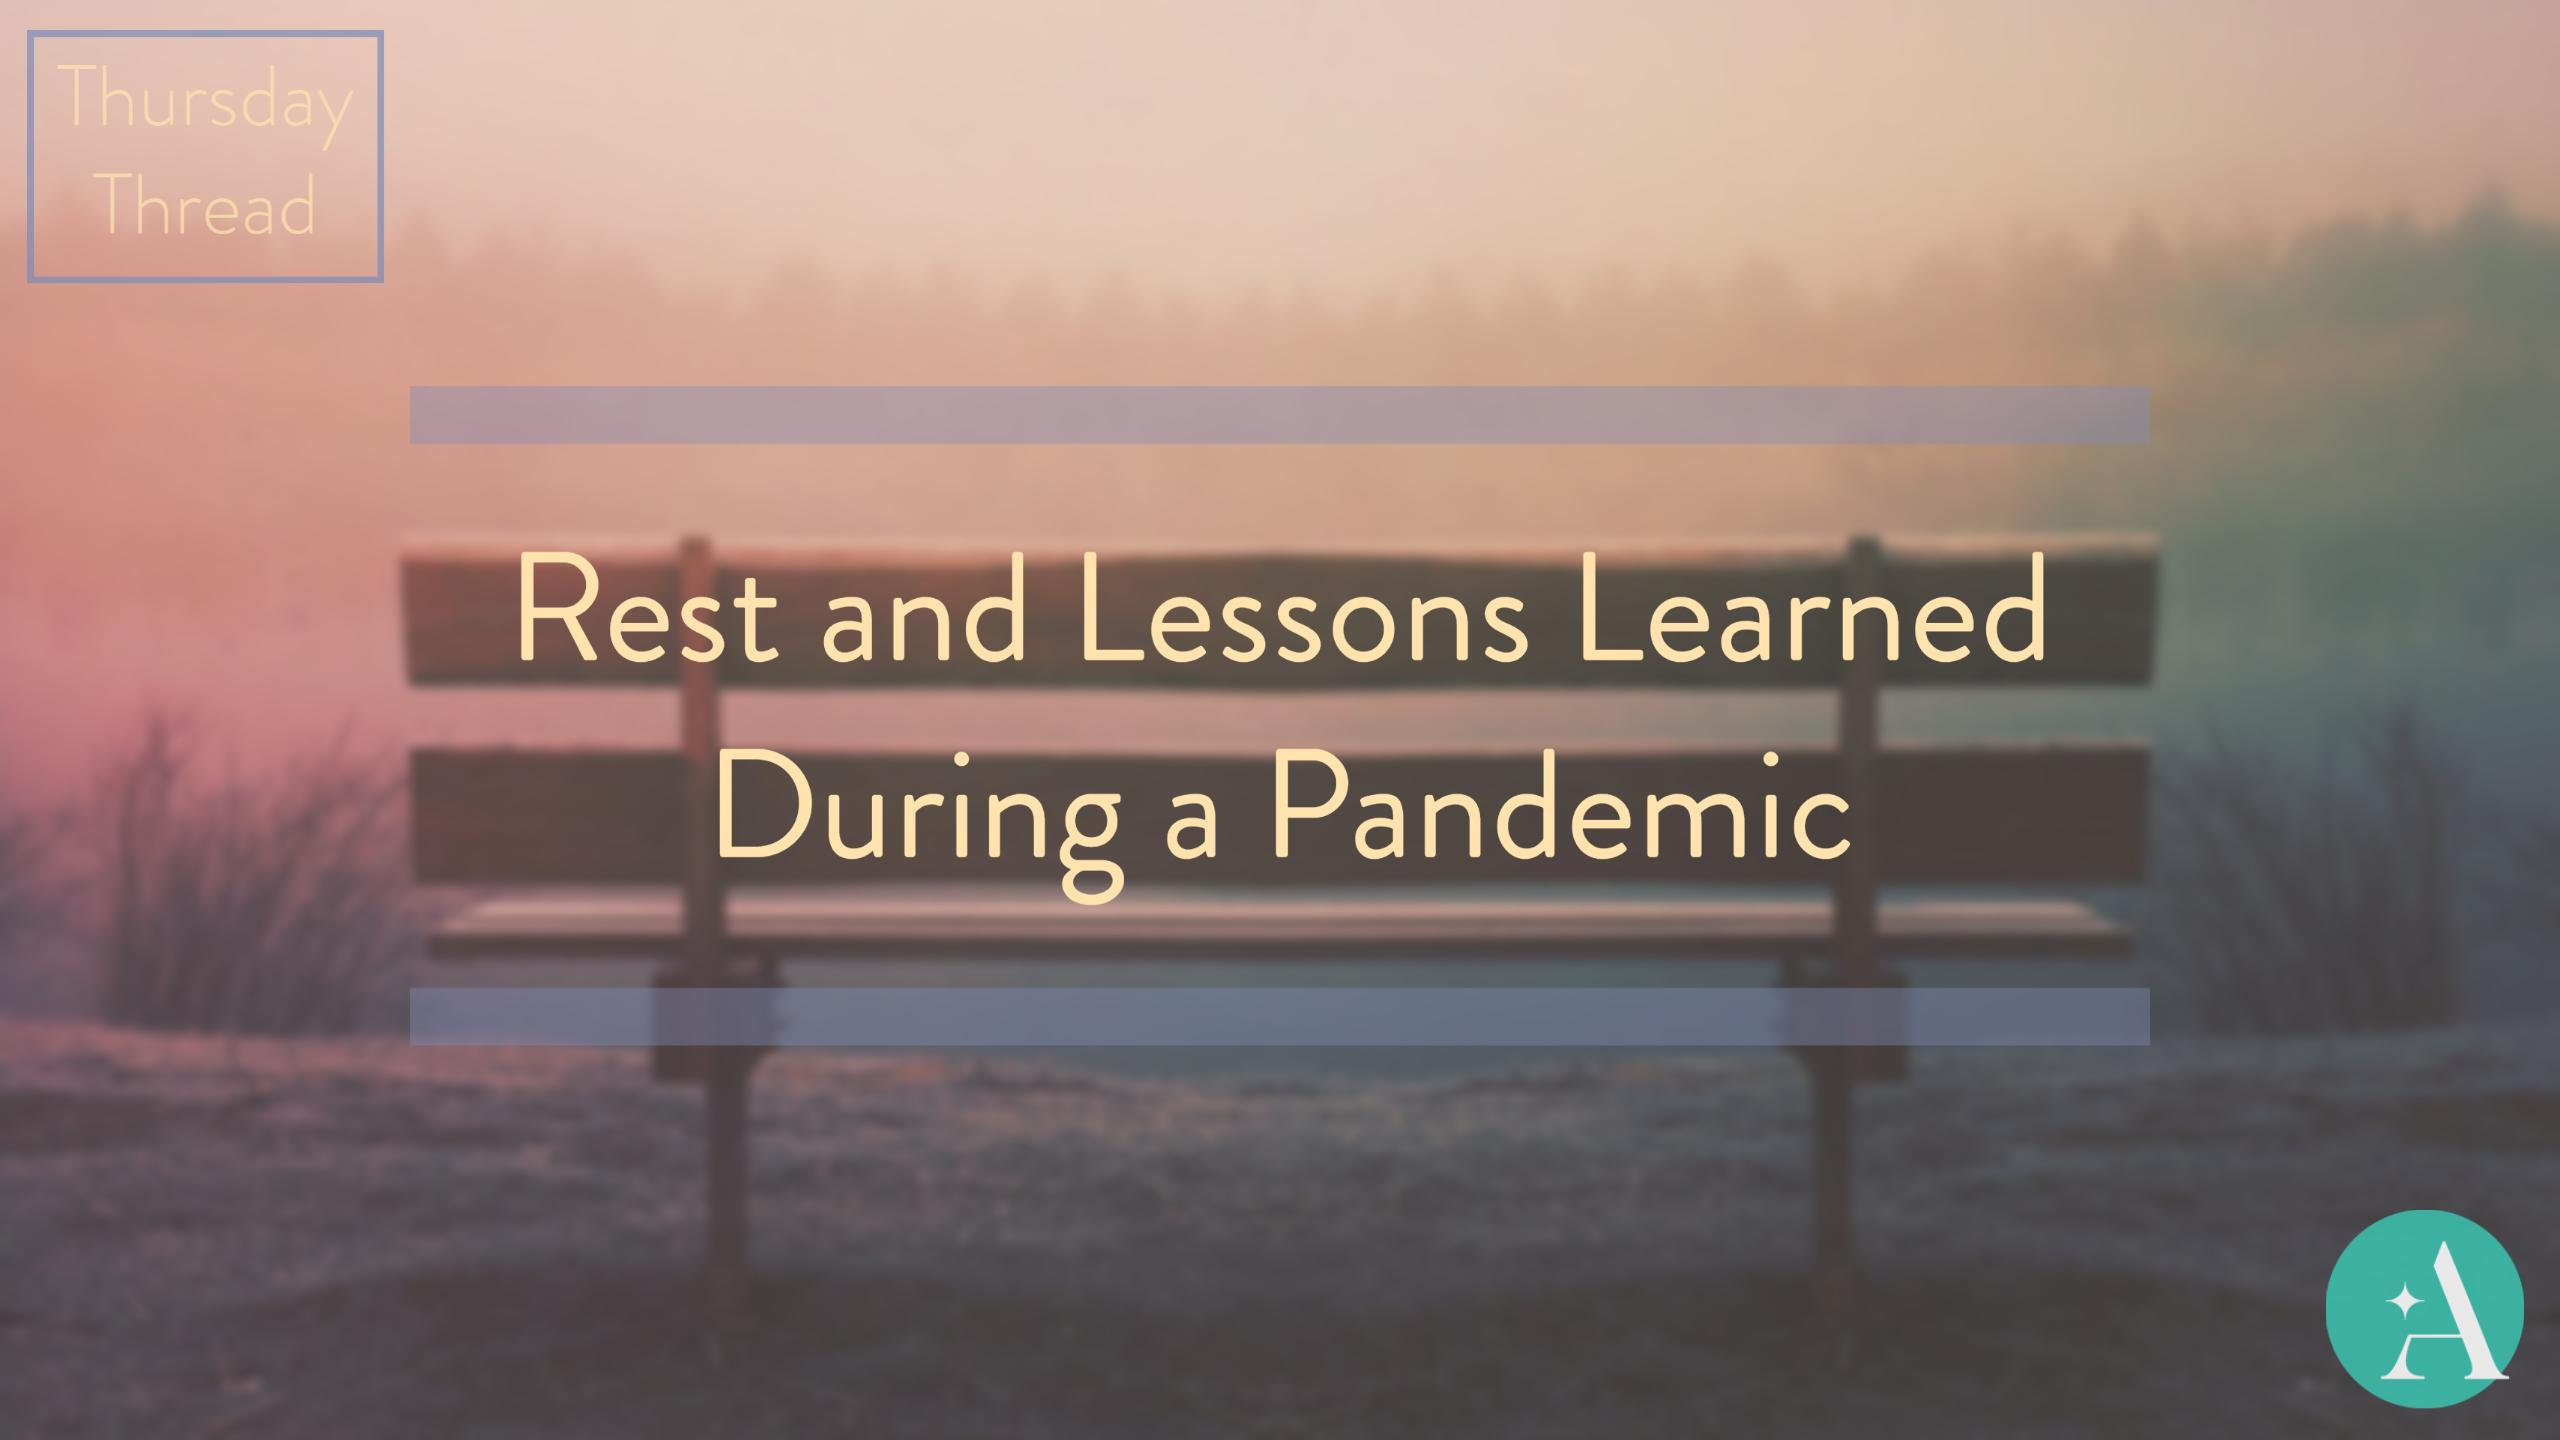 Thursday Thread: Rest and Lessons Learned During a Pandemic  Thumbnail